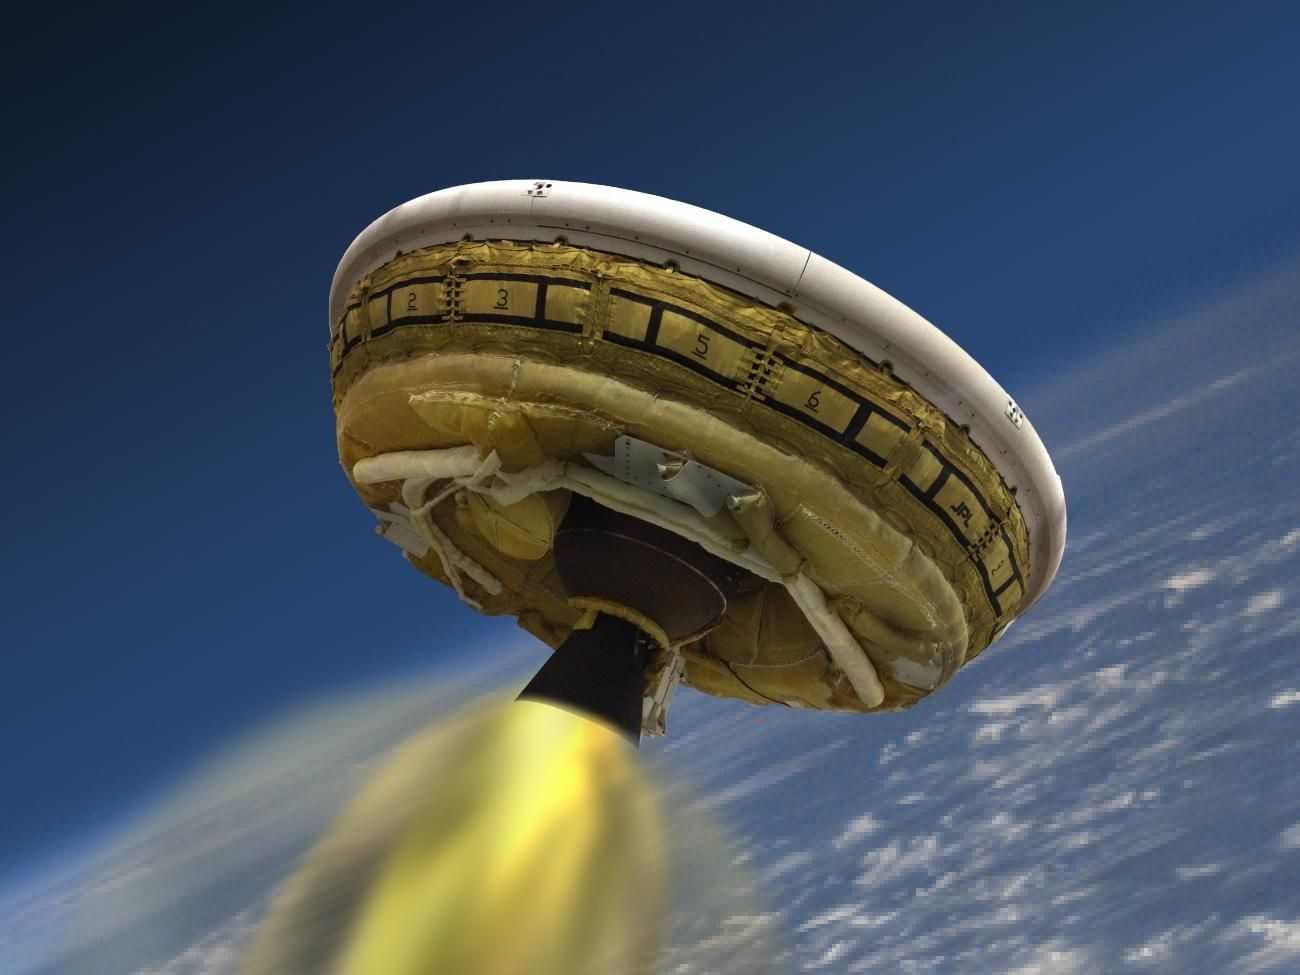 NASA's 'Flying Saucer' Mars Lander Splashes Down in the Pacific   Motherboard